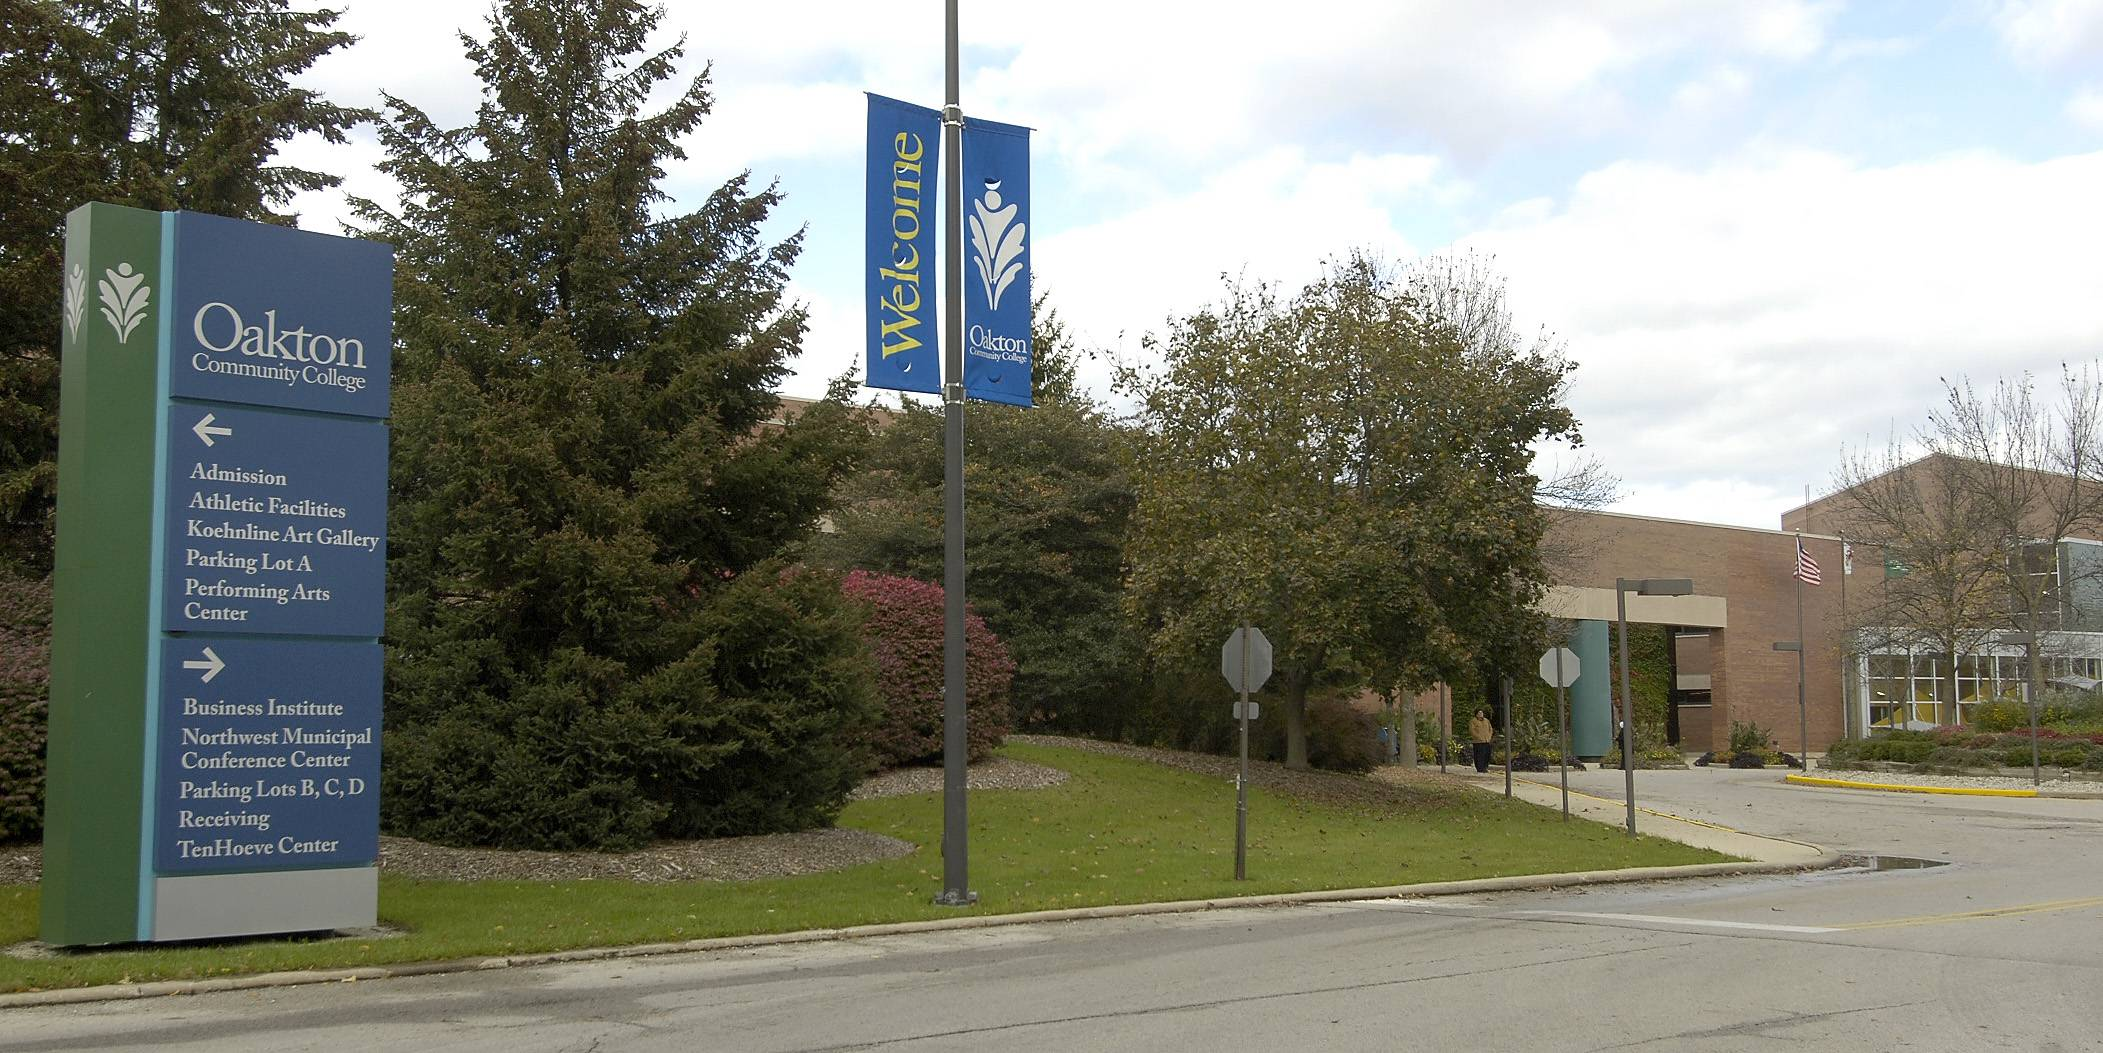 Oakton Community College is the subject of two federal age discrimination lawsuits after the Des Plaines-based school laid off some 80 part-time employees last year.